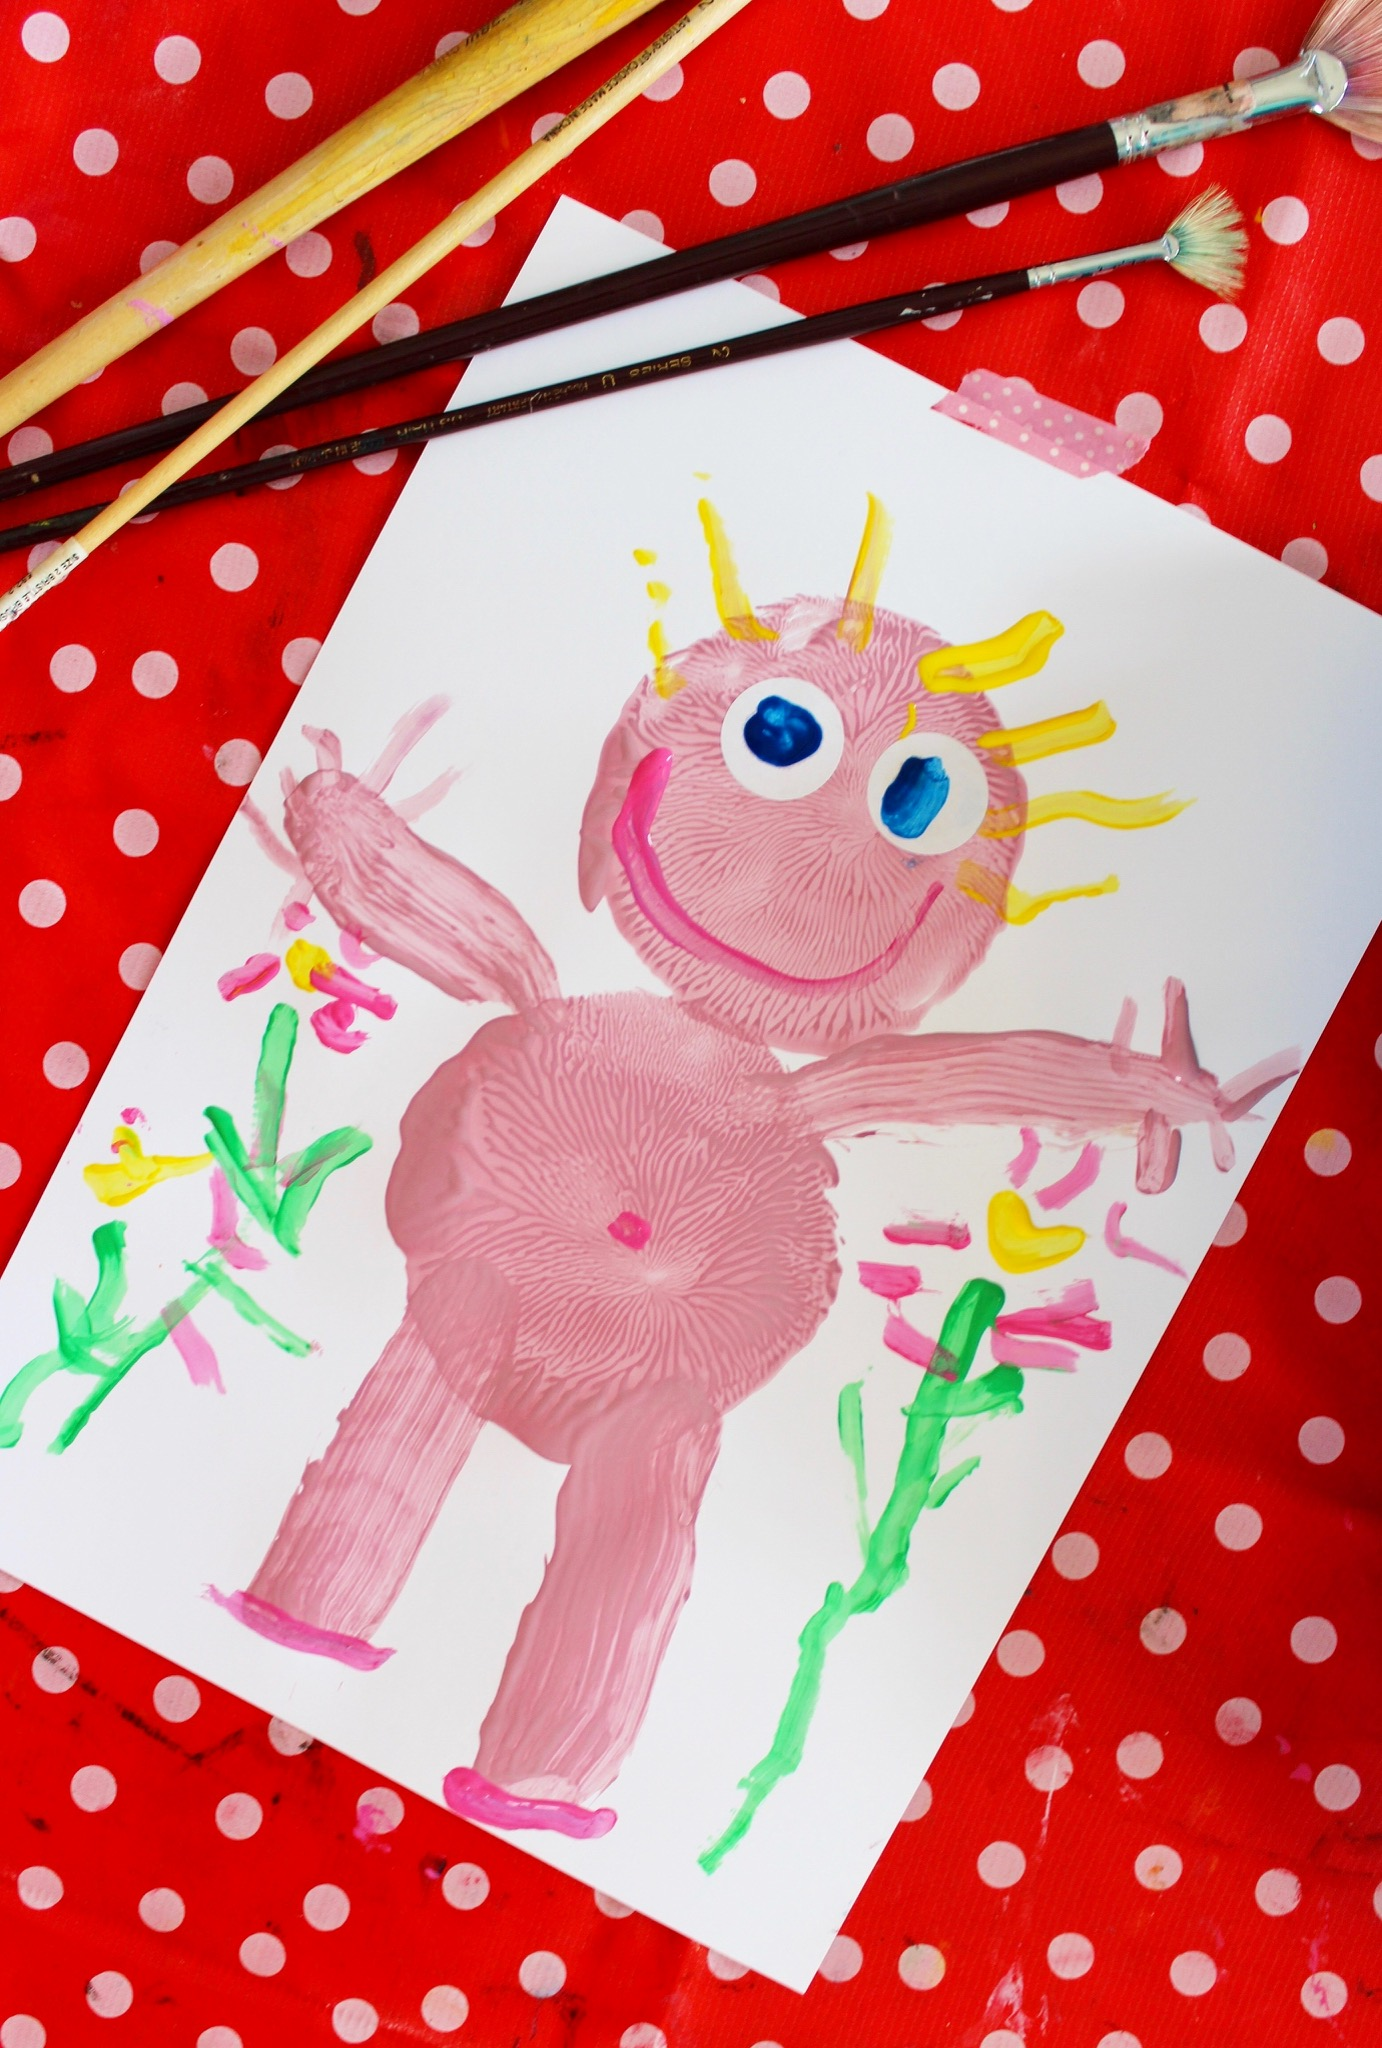 Kids painting activities for toddlers | simple self-portrait painting activity for kids